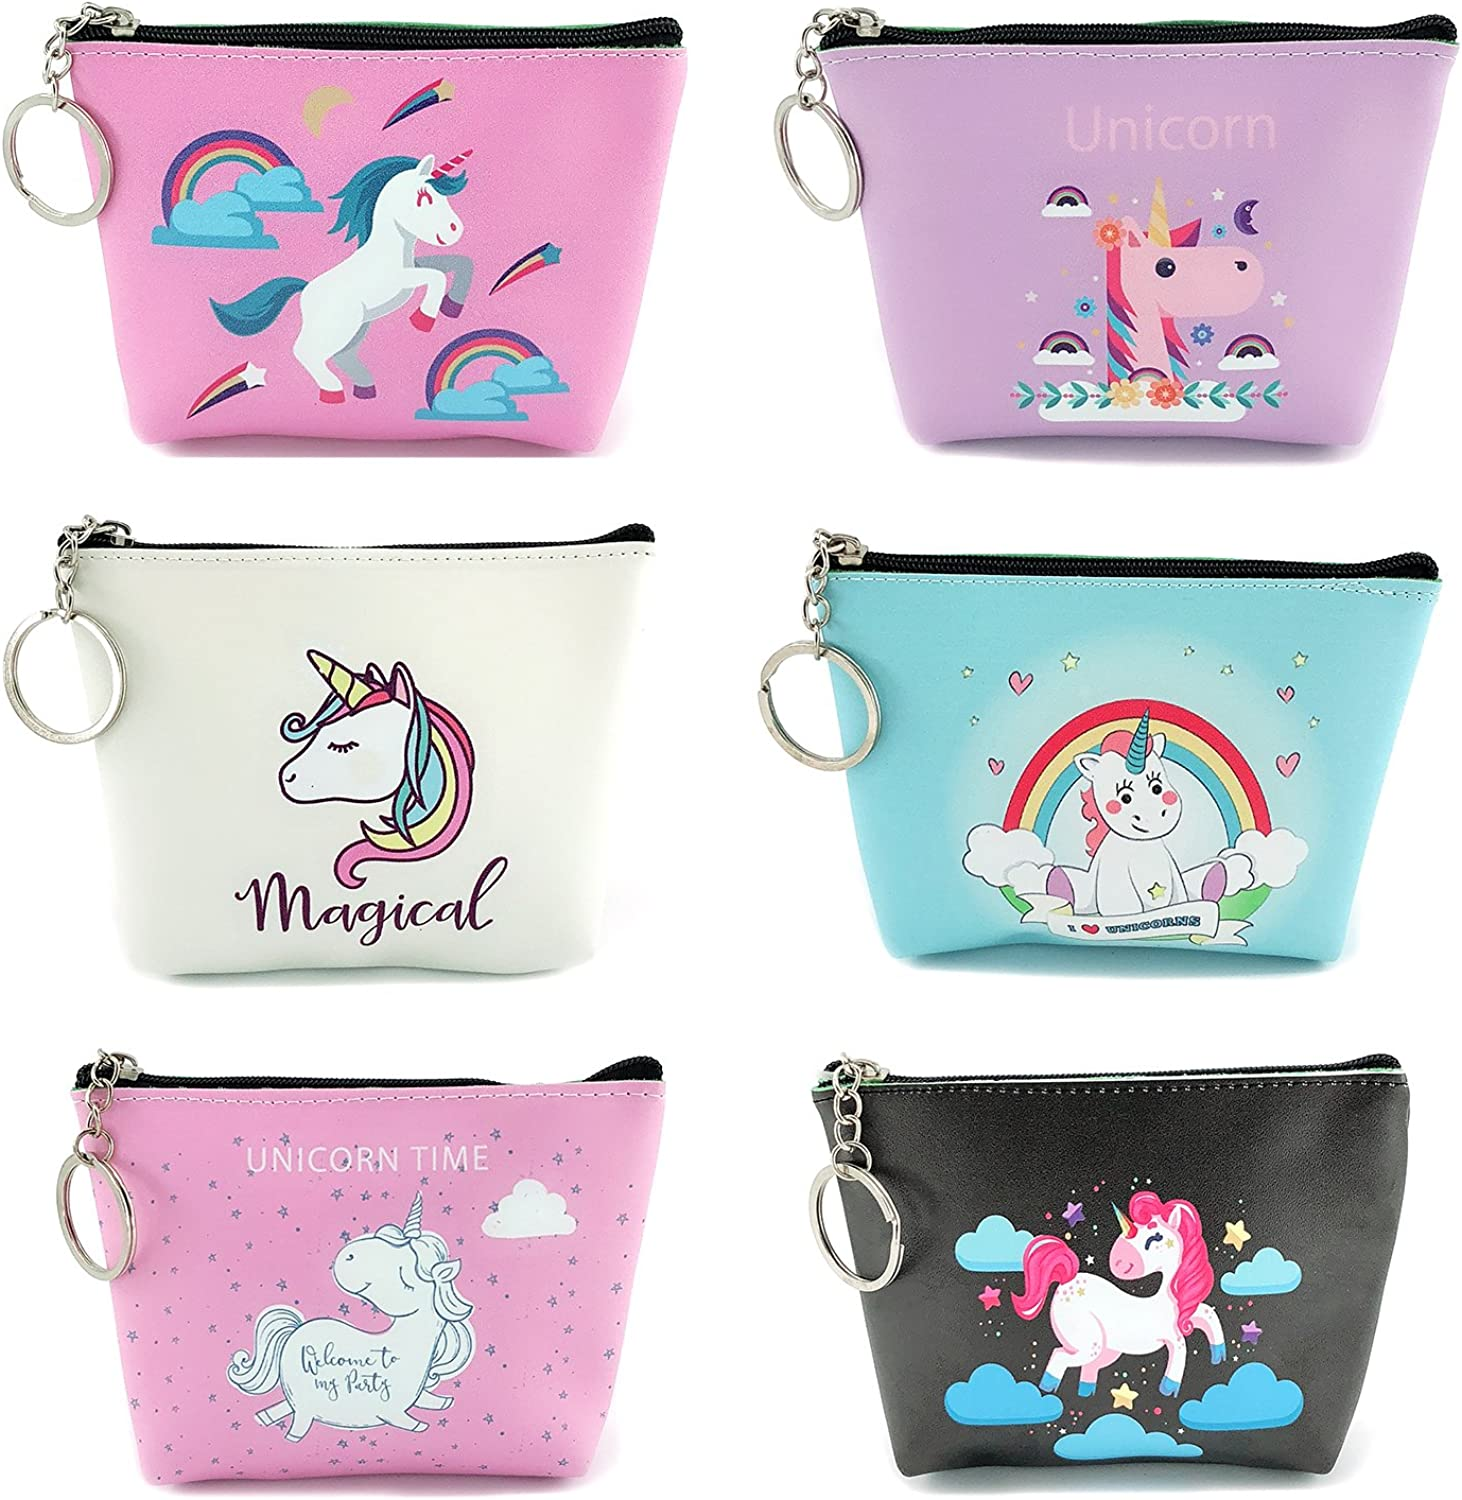 Elesa Miracle 6pc Women Girl Unicorn Zipper Coin Purse Clutch Pouch Wallet Value Set